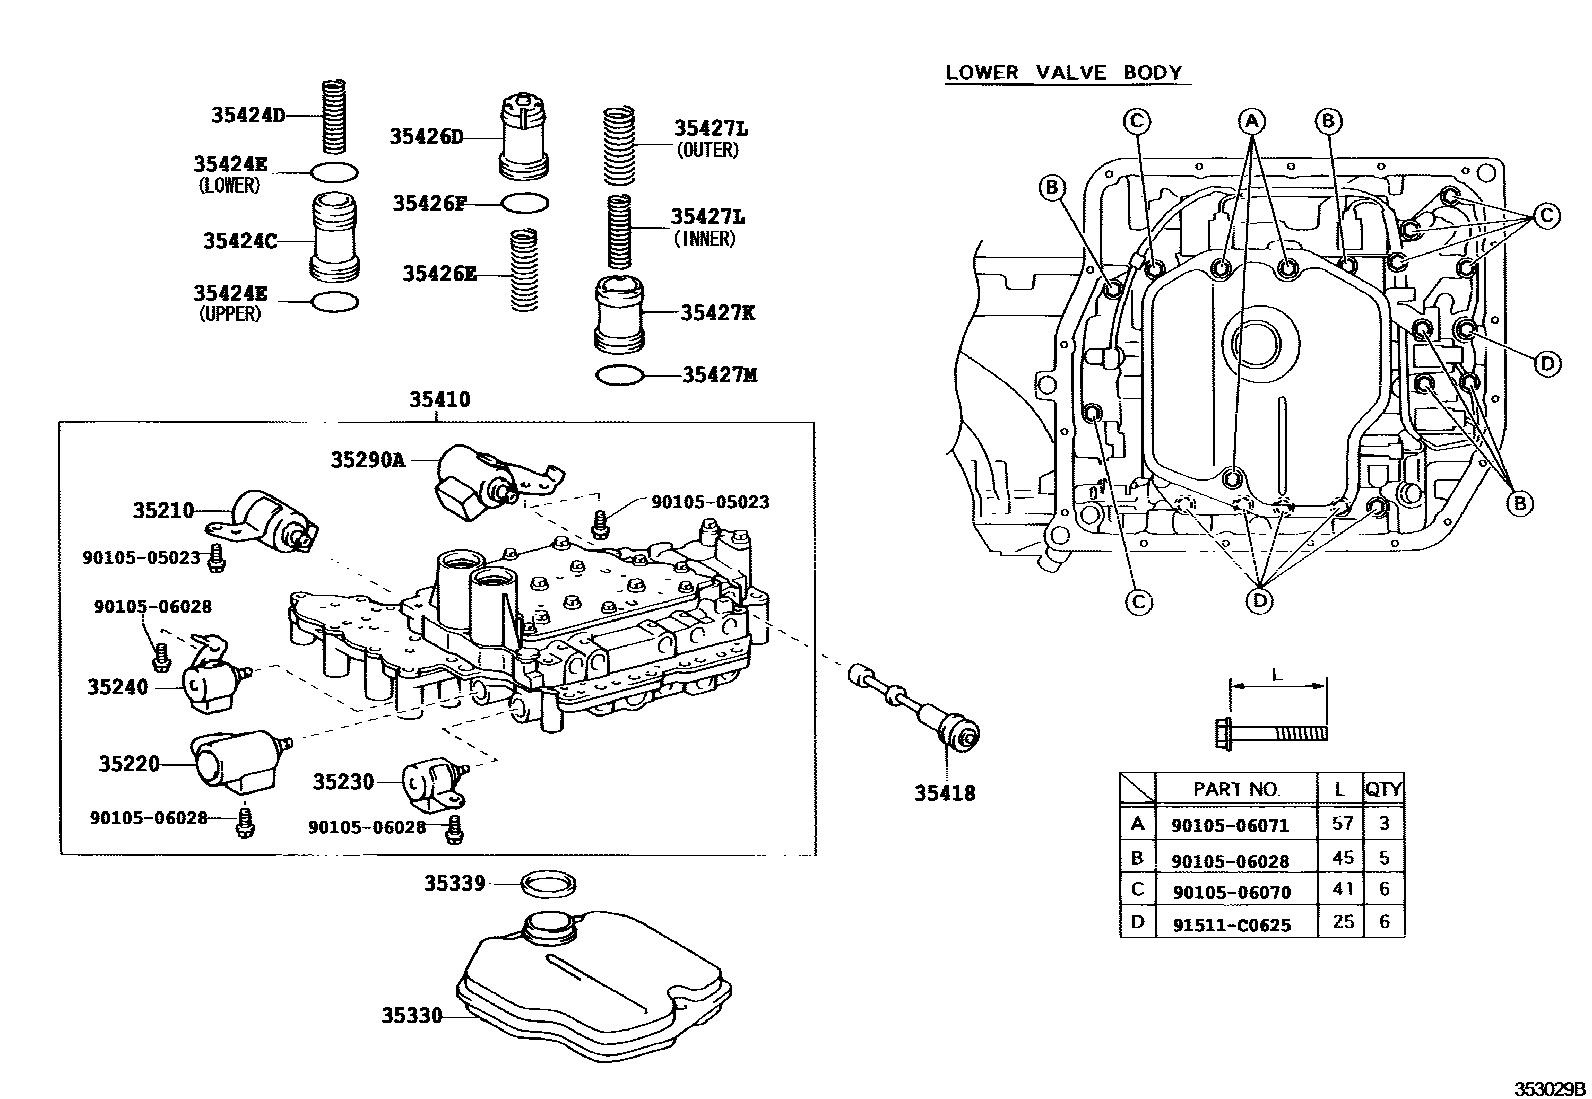 2006 Lexus Gs 300 Wiring Diagram 02 Gs300 Engine Electrical Diagrams 2002 Es300 Example U2022 Rh Olkha Co